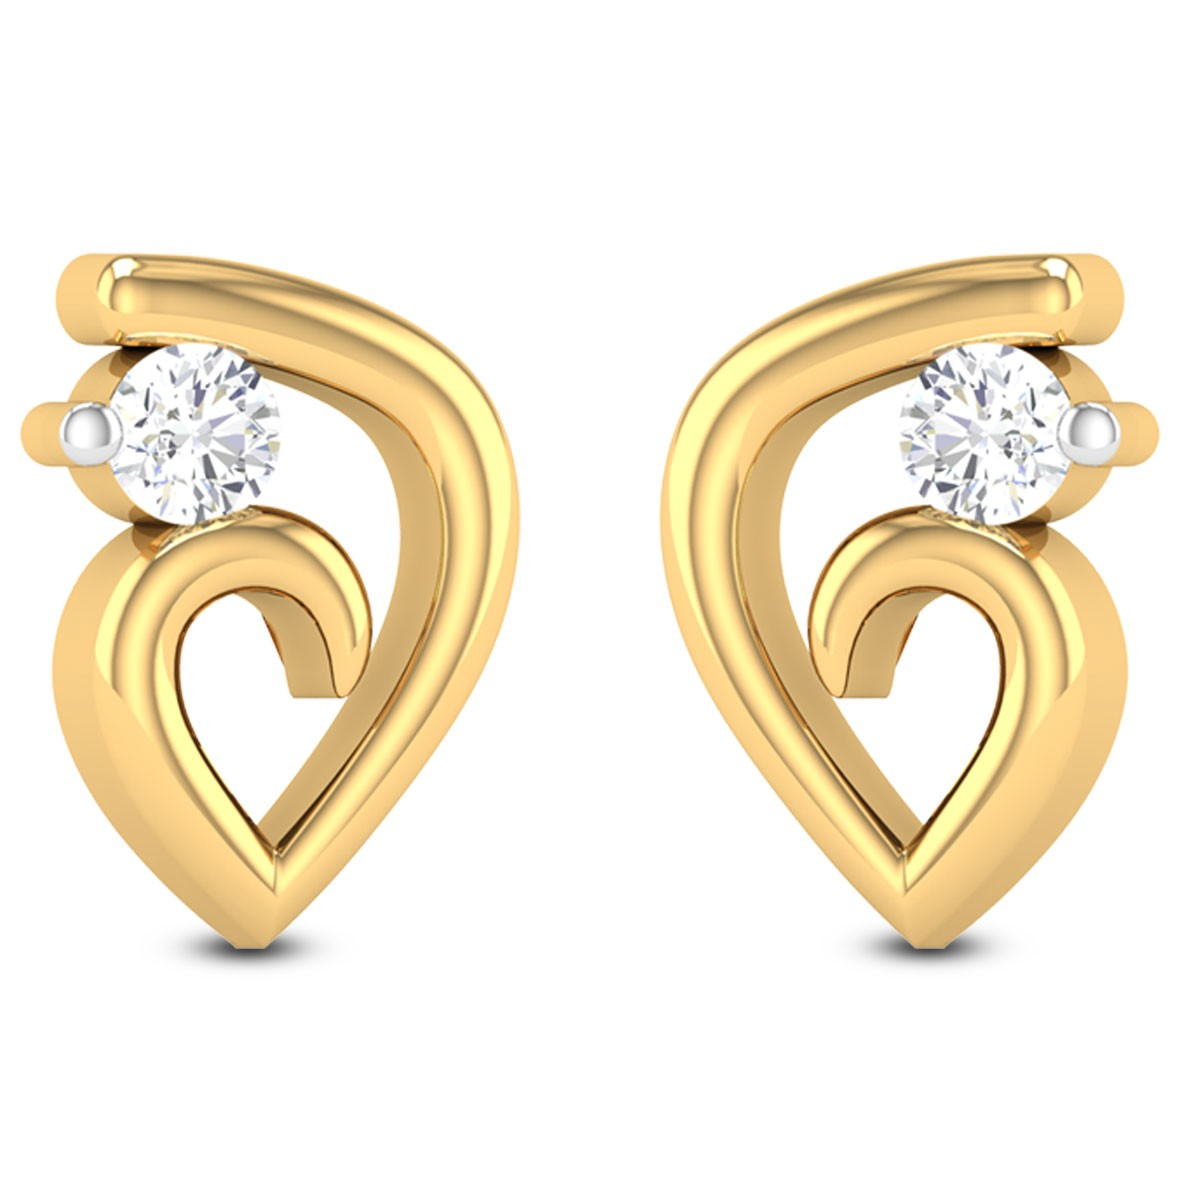 Claudia Diamond Earrings